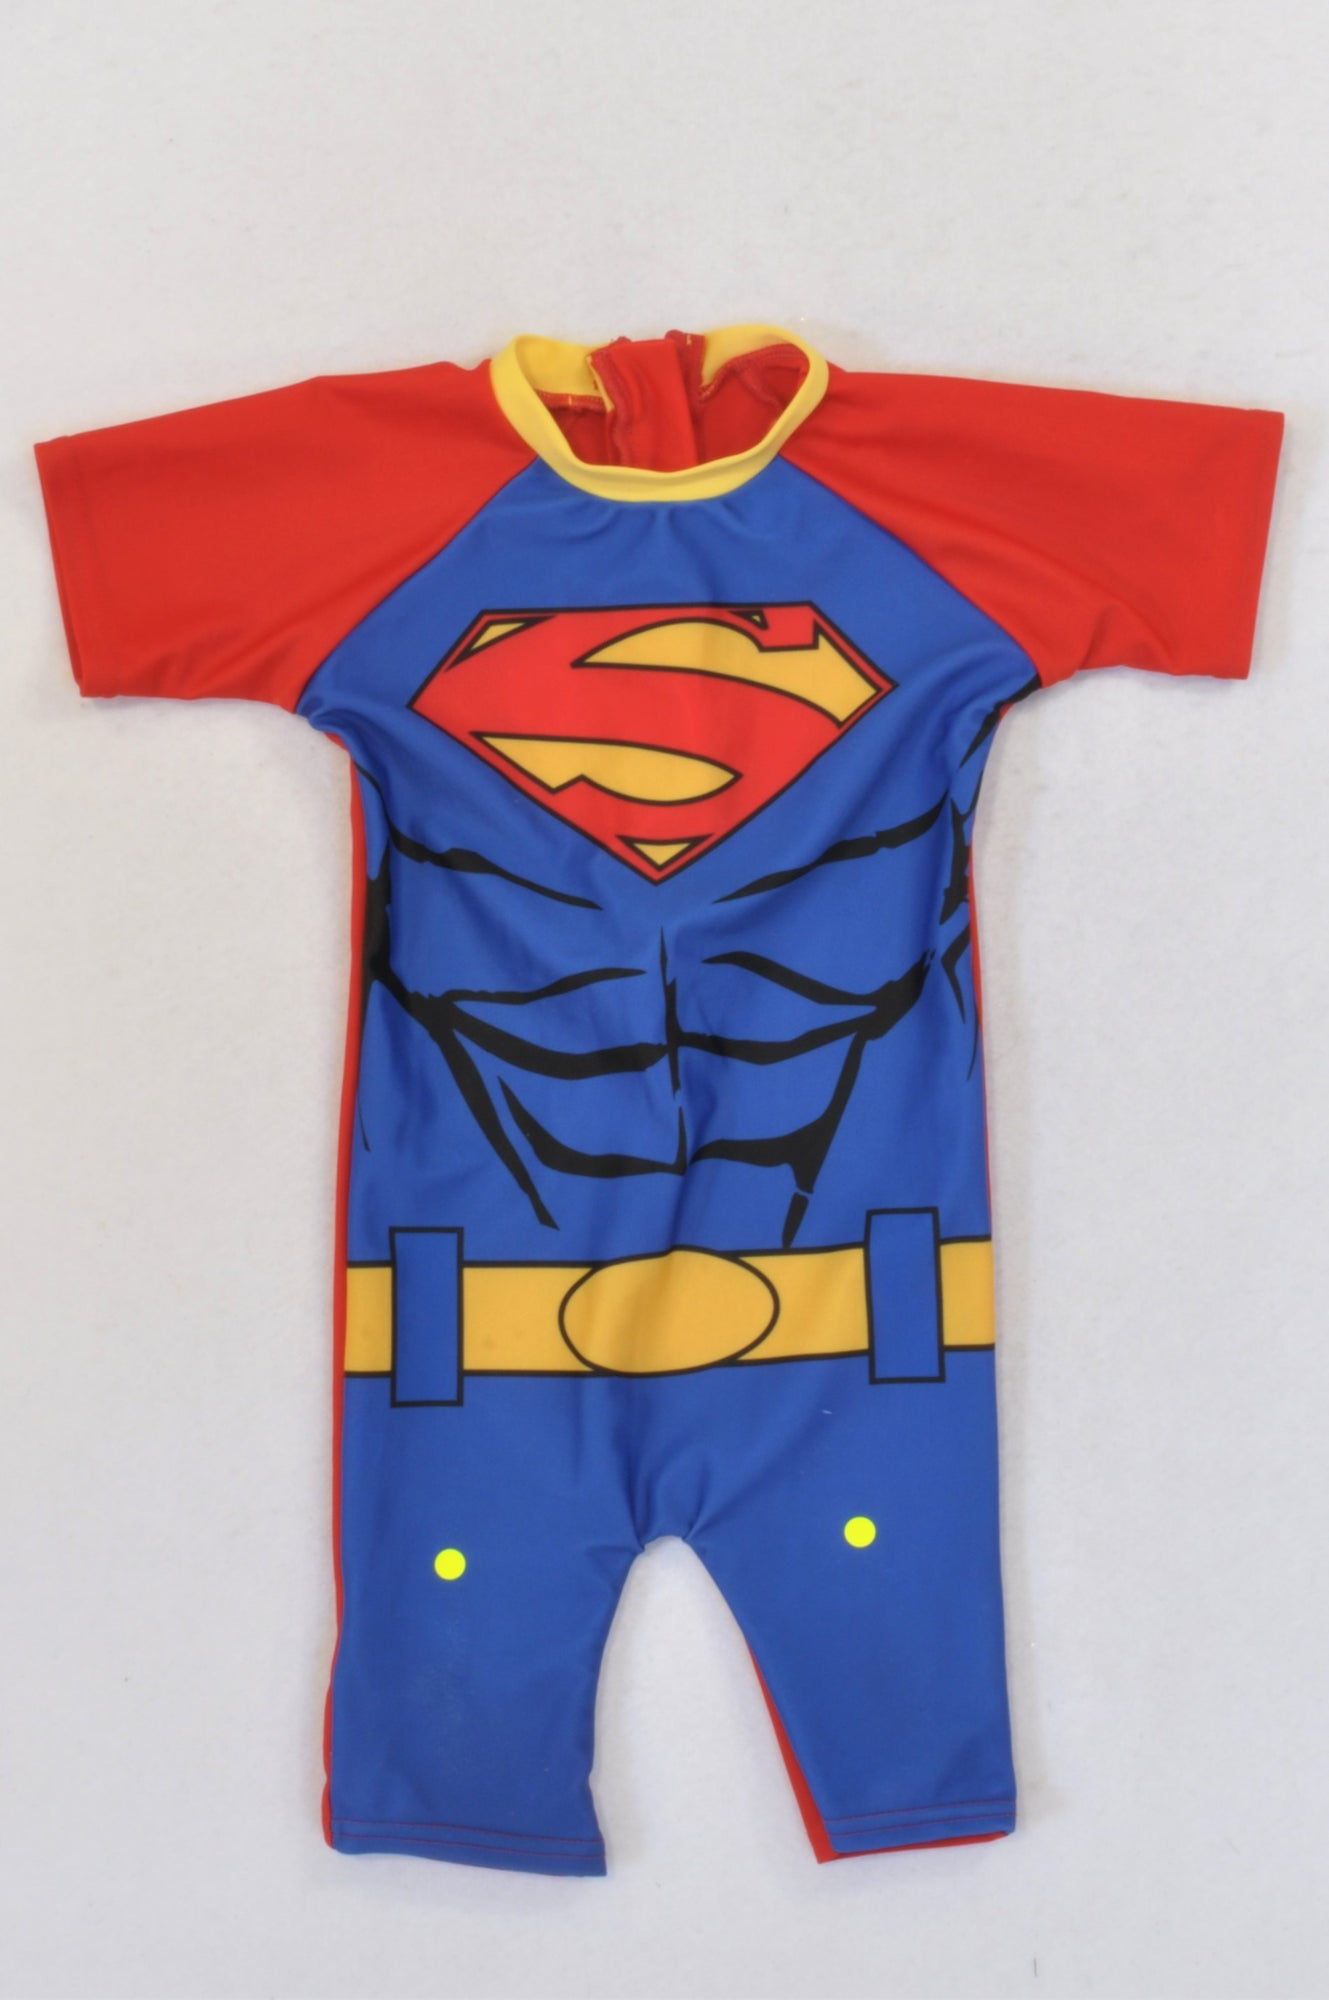 9398c2af25 Woolworths Red Superman Swim Suit Boys 12-18 months – Once More